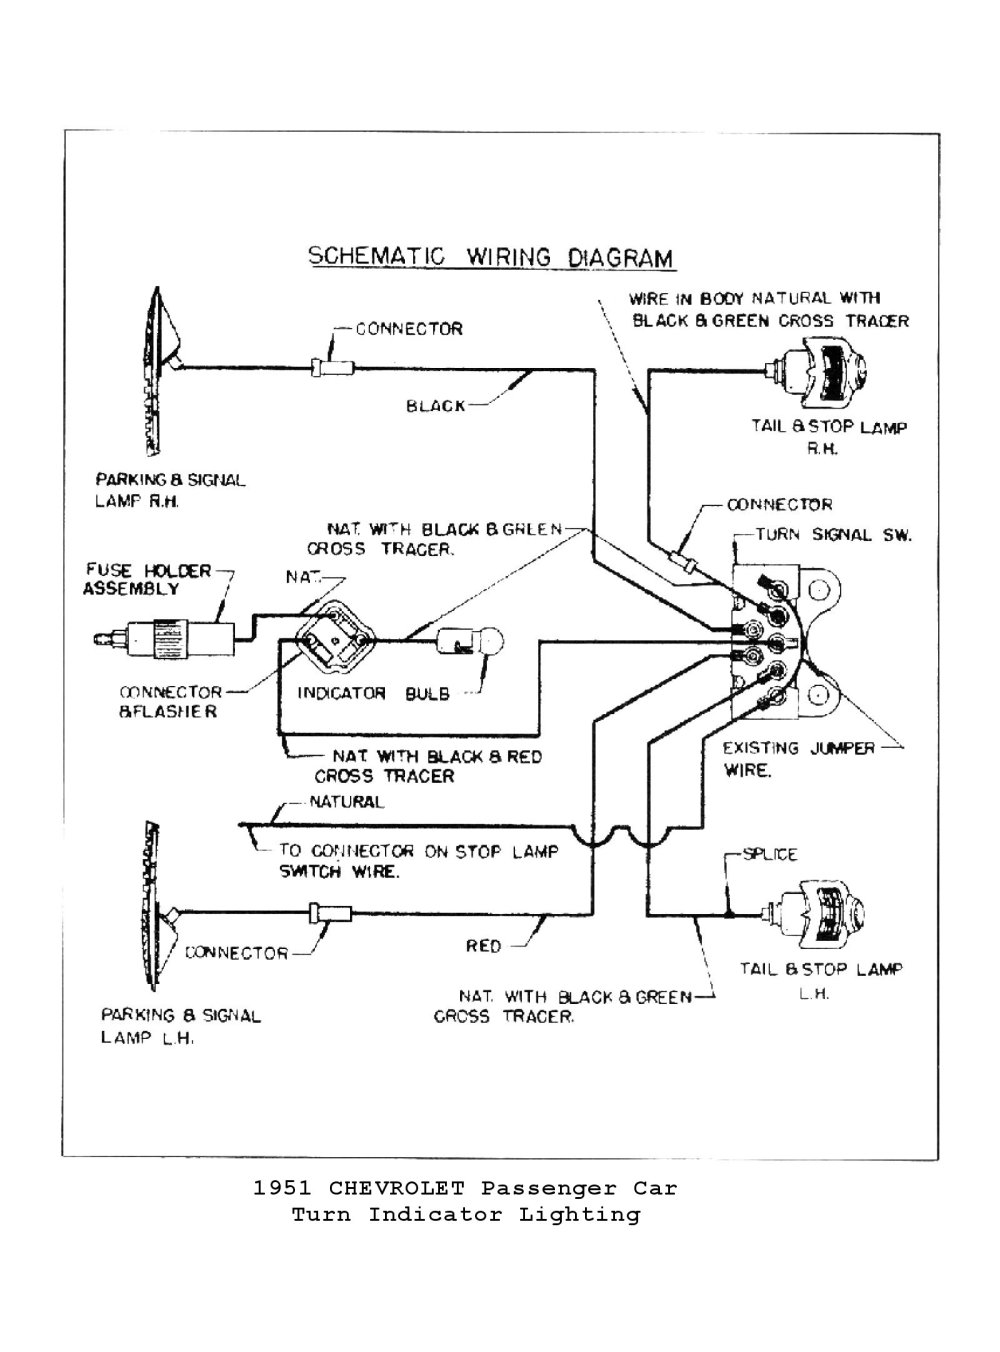 medium resolution of 1948 chevrolet wiring diagram wiring diagram schematics chevy steering column wiring harness 55 chevy radio wiring